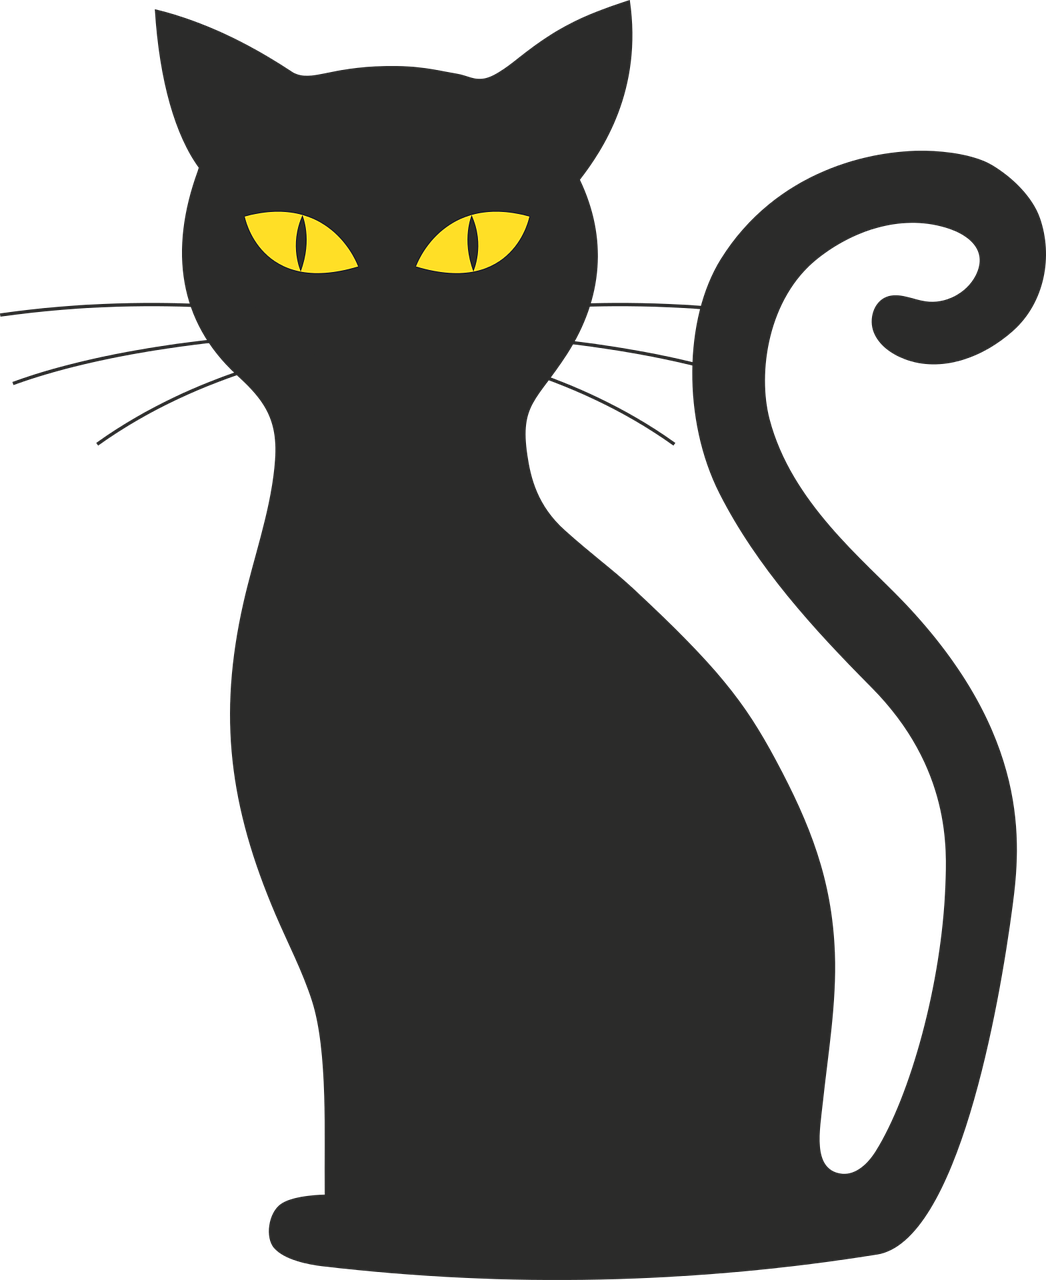 Alley cat clipart graphic royalty free stock Free Image on Pixabay - Cat, Halloween, Silhouette, Mieze ... graphic royalty free stock